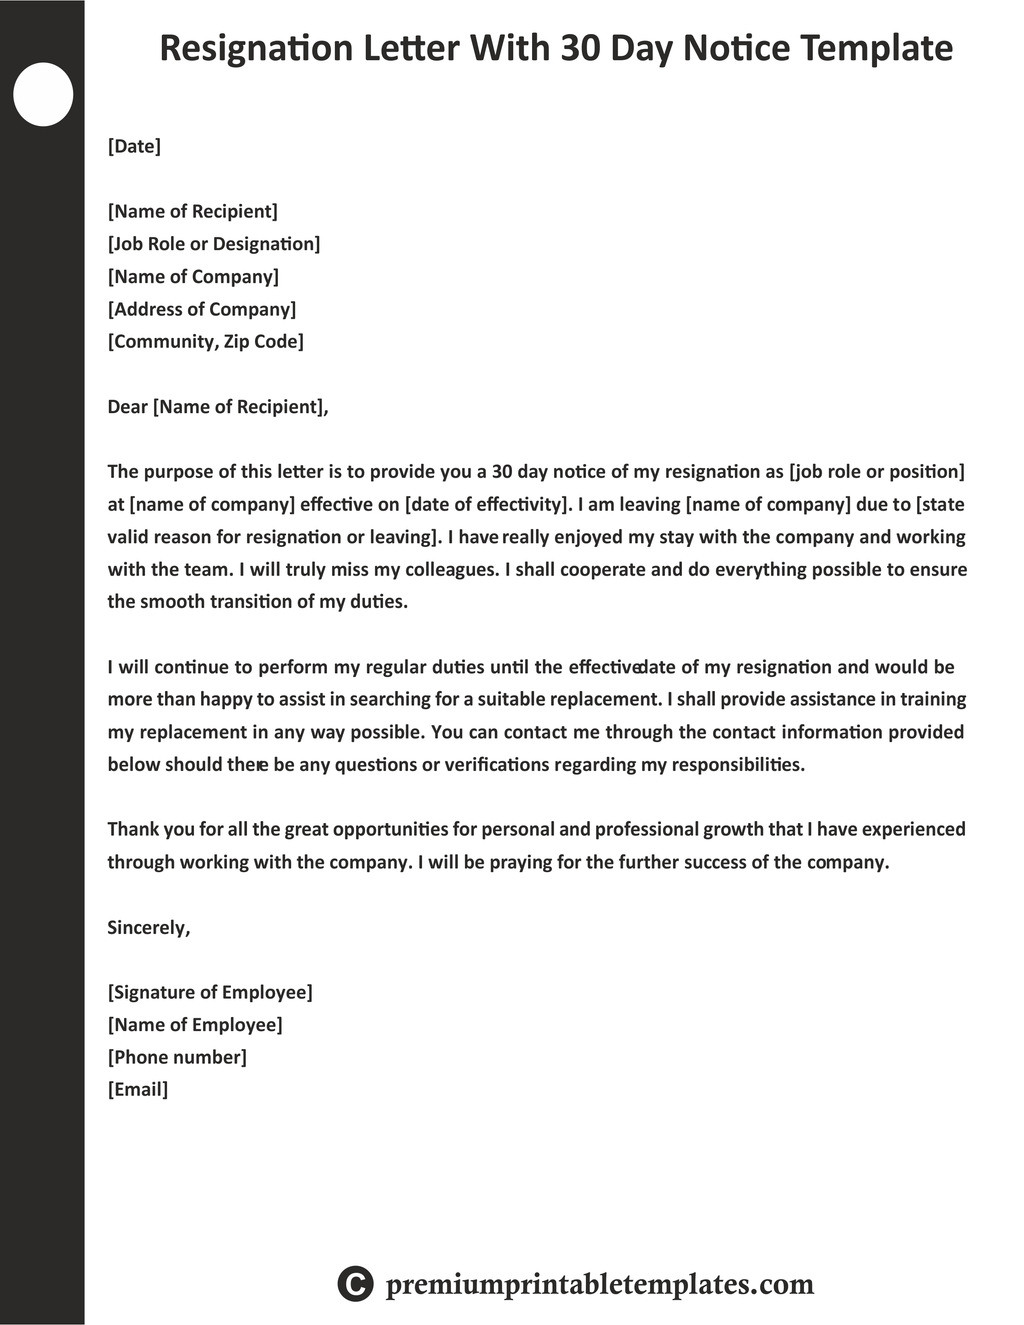 Resignation Letter with 30 Days Notice Template